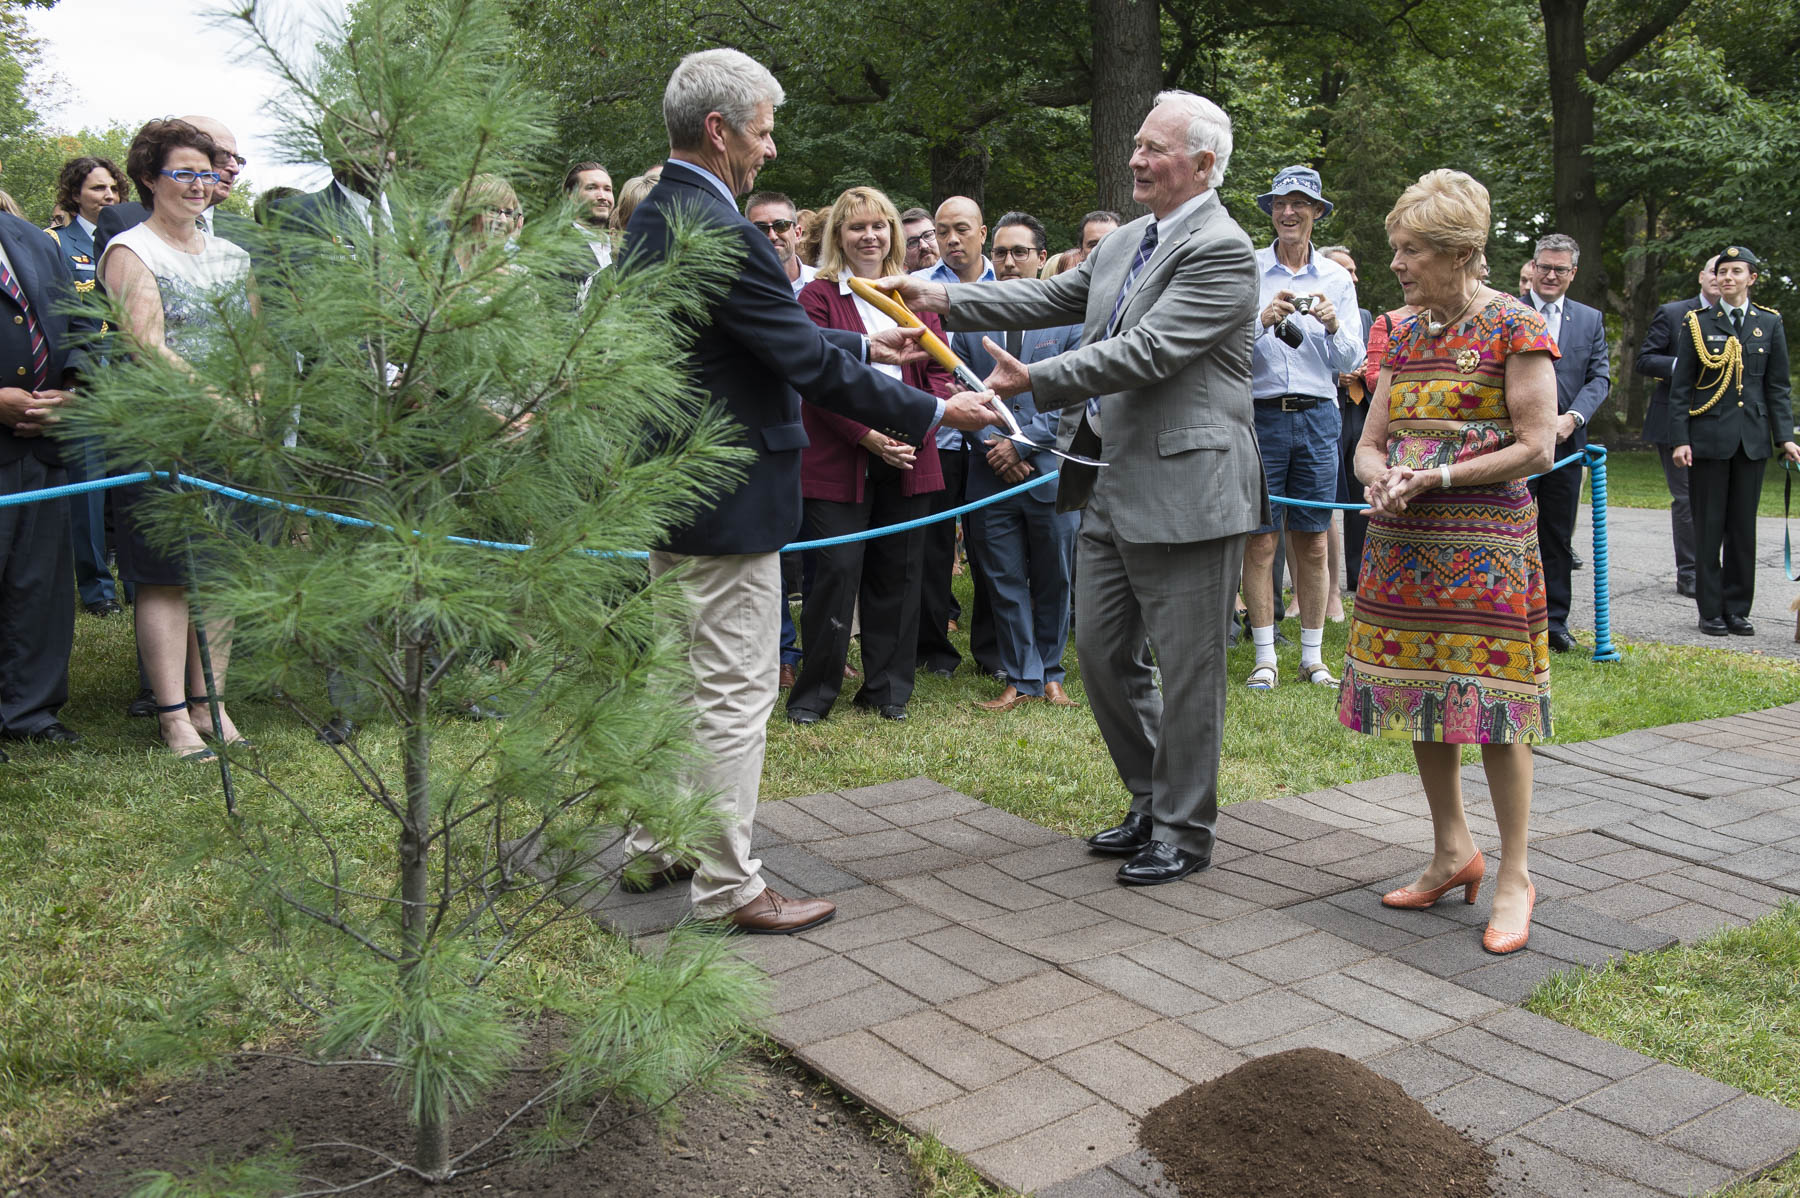 As a final gesture, Their Excellencies planted a white pine (pinus strobus) on the grounds of Rideau Hall to commemorate the end of their mandate.